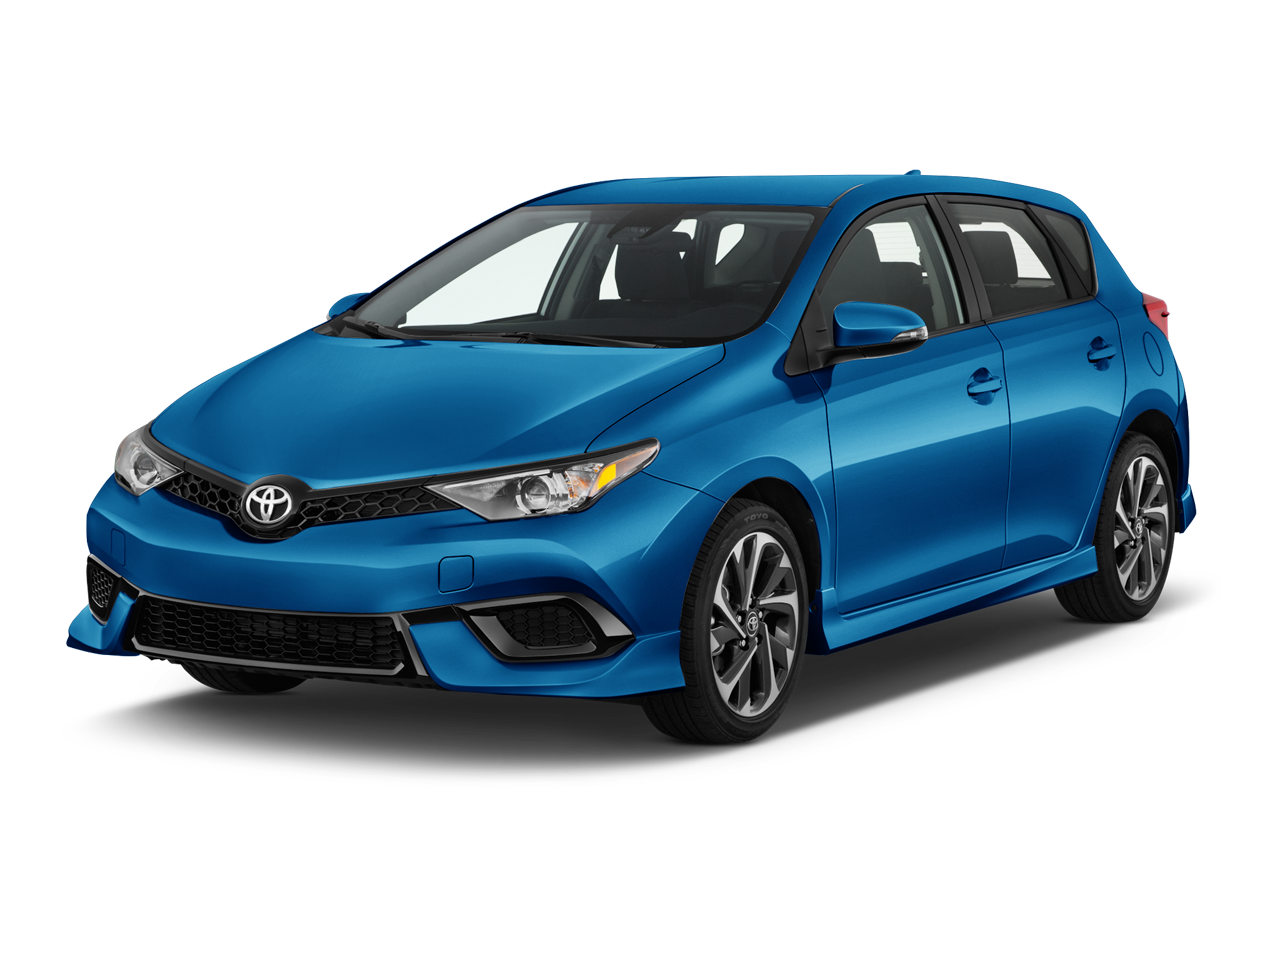 new 2018 toyota corolla im glendora ca toyota of glendora. Black Bedroom Furniture Sets. Home Design Ideas